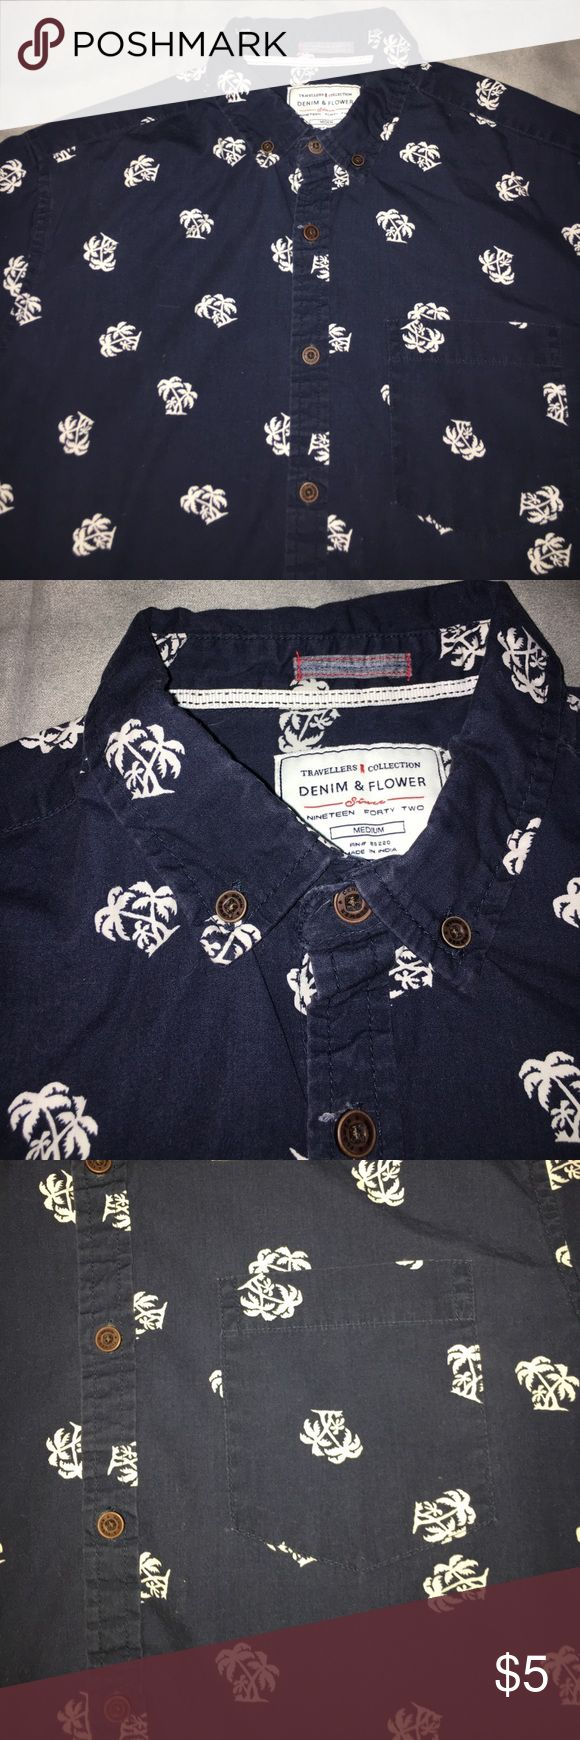 🌴 Palm tree dress shirt Short sleeve palm tree button down! Navy with white palm trees travellers collection Shirts Casual Button Down Shirts